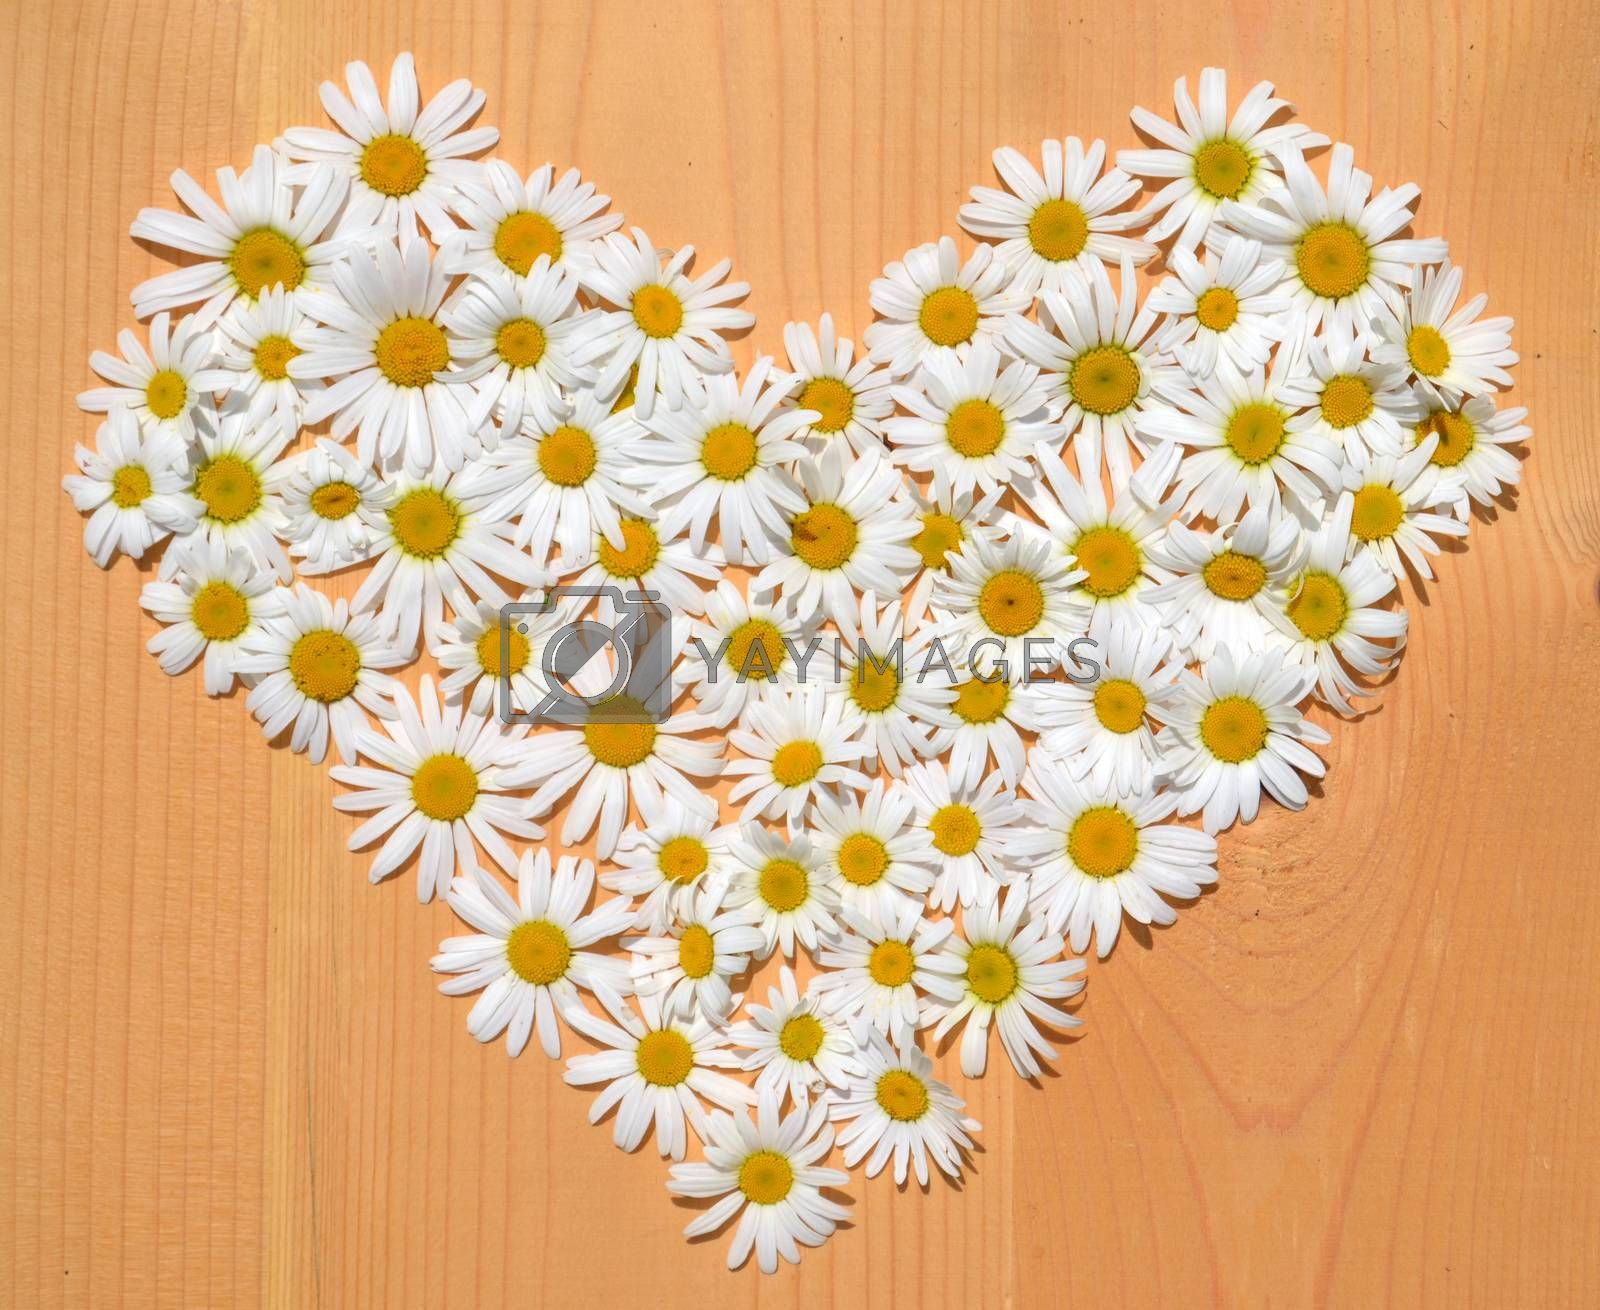 Daisy flowers in a shape of heart on wooden background